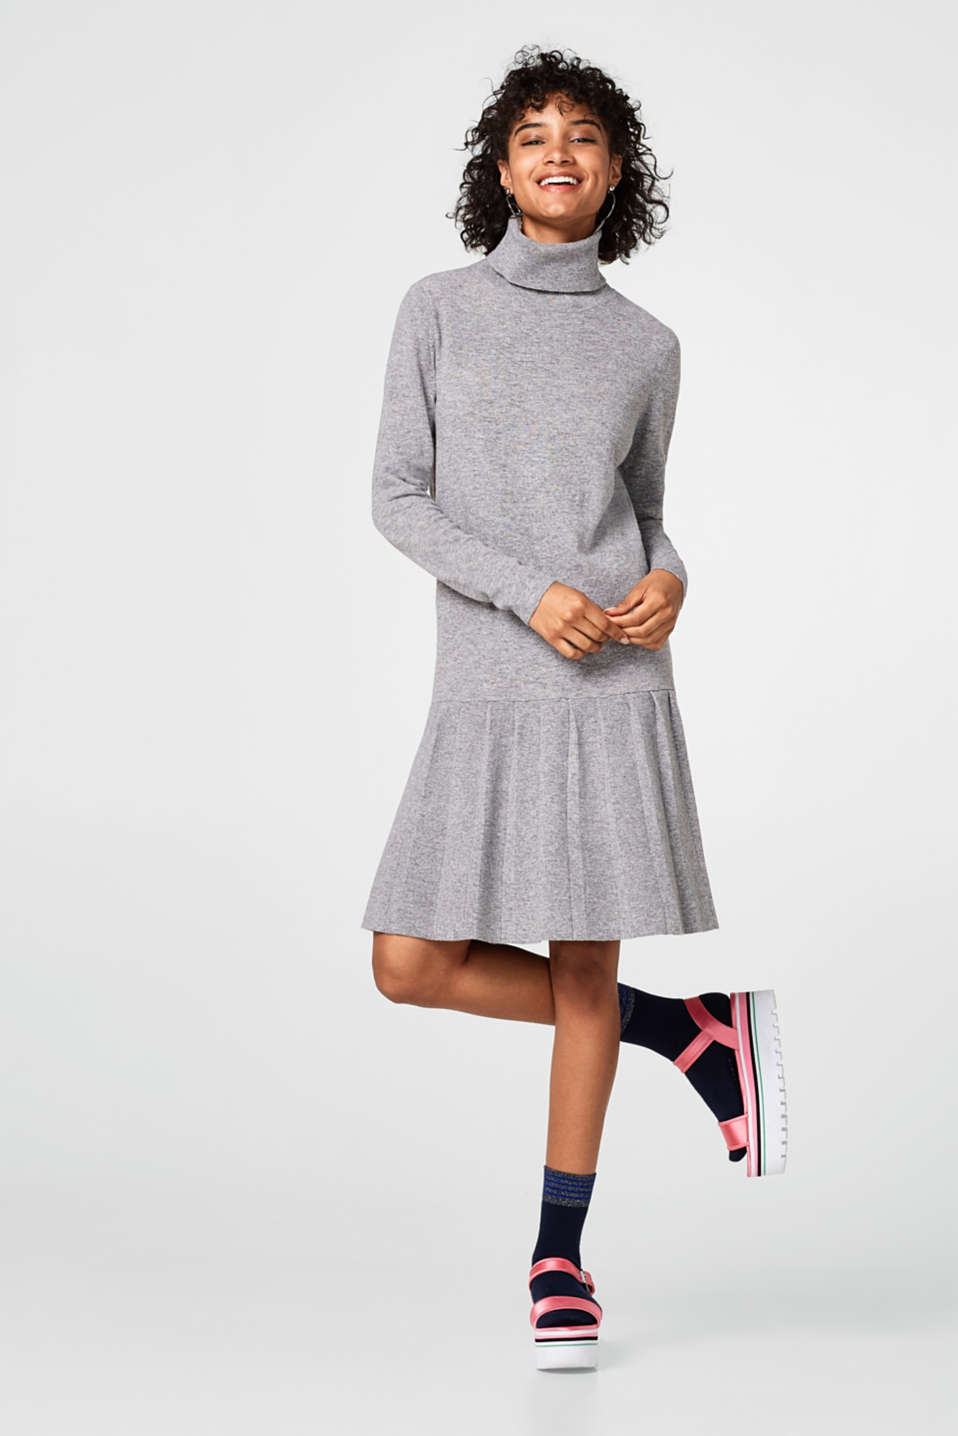 Wool blend knitted dress + a flounce hem